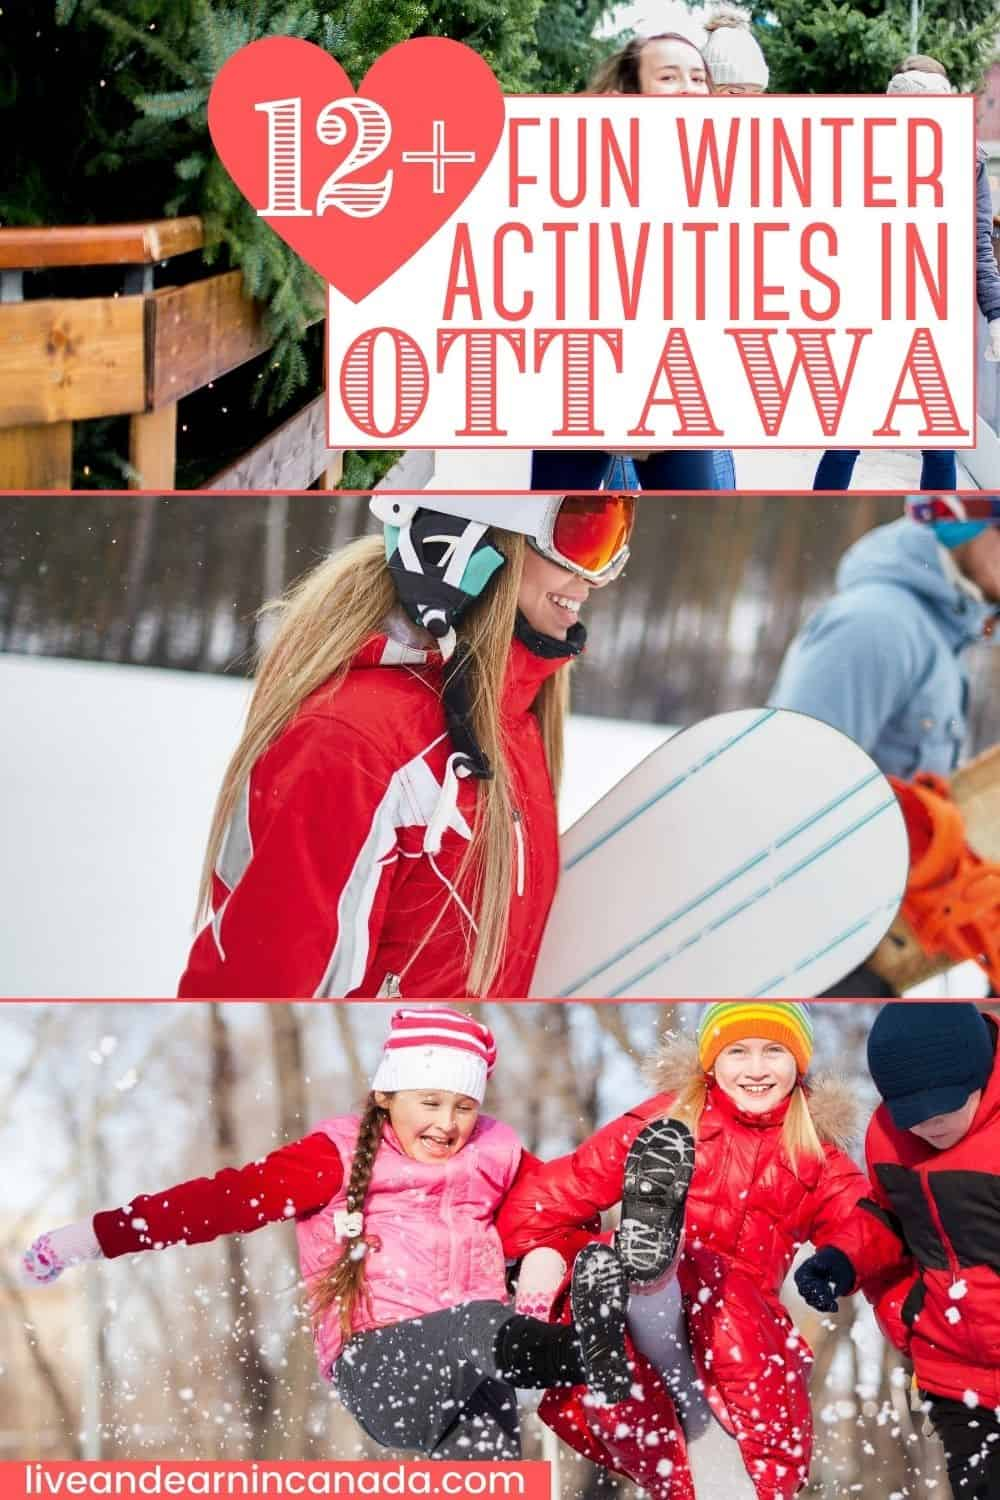 Creative things to do in Ottawa winter! 12 AWESOME Things to do in Ottawa in Winter Are you planning a vacation to Ottawa in the winter? Here are the top things to do in winter in Ottawa, including things to do outdoors and indoors! It makes for the perfect winter Ontario road trip destination! I what to do in Ottawa I Ontario travel I winter in Ontario I things to do in Ontario in winter I places to go in Ontario I where to go in Ottawa I winter activities in Ottawa I Ottawa attractions I Ontario attractions I places to go in Canada in winter I #Ottawa #Ontario #Canada